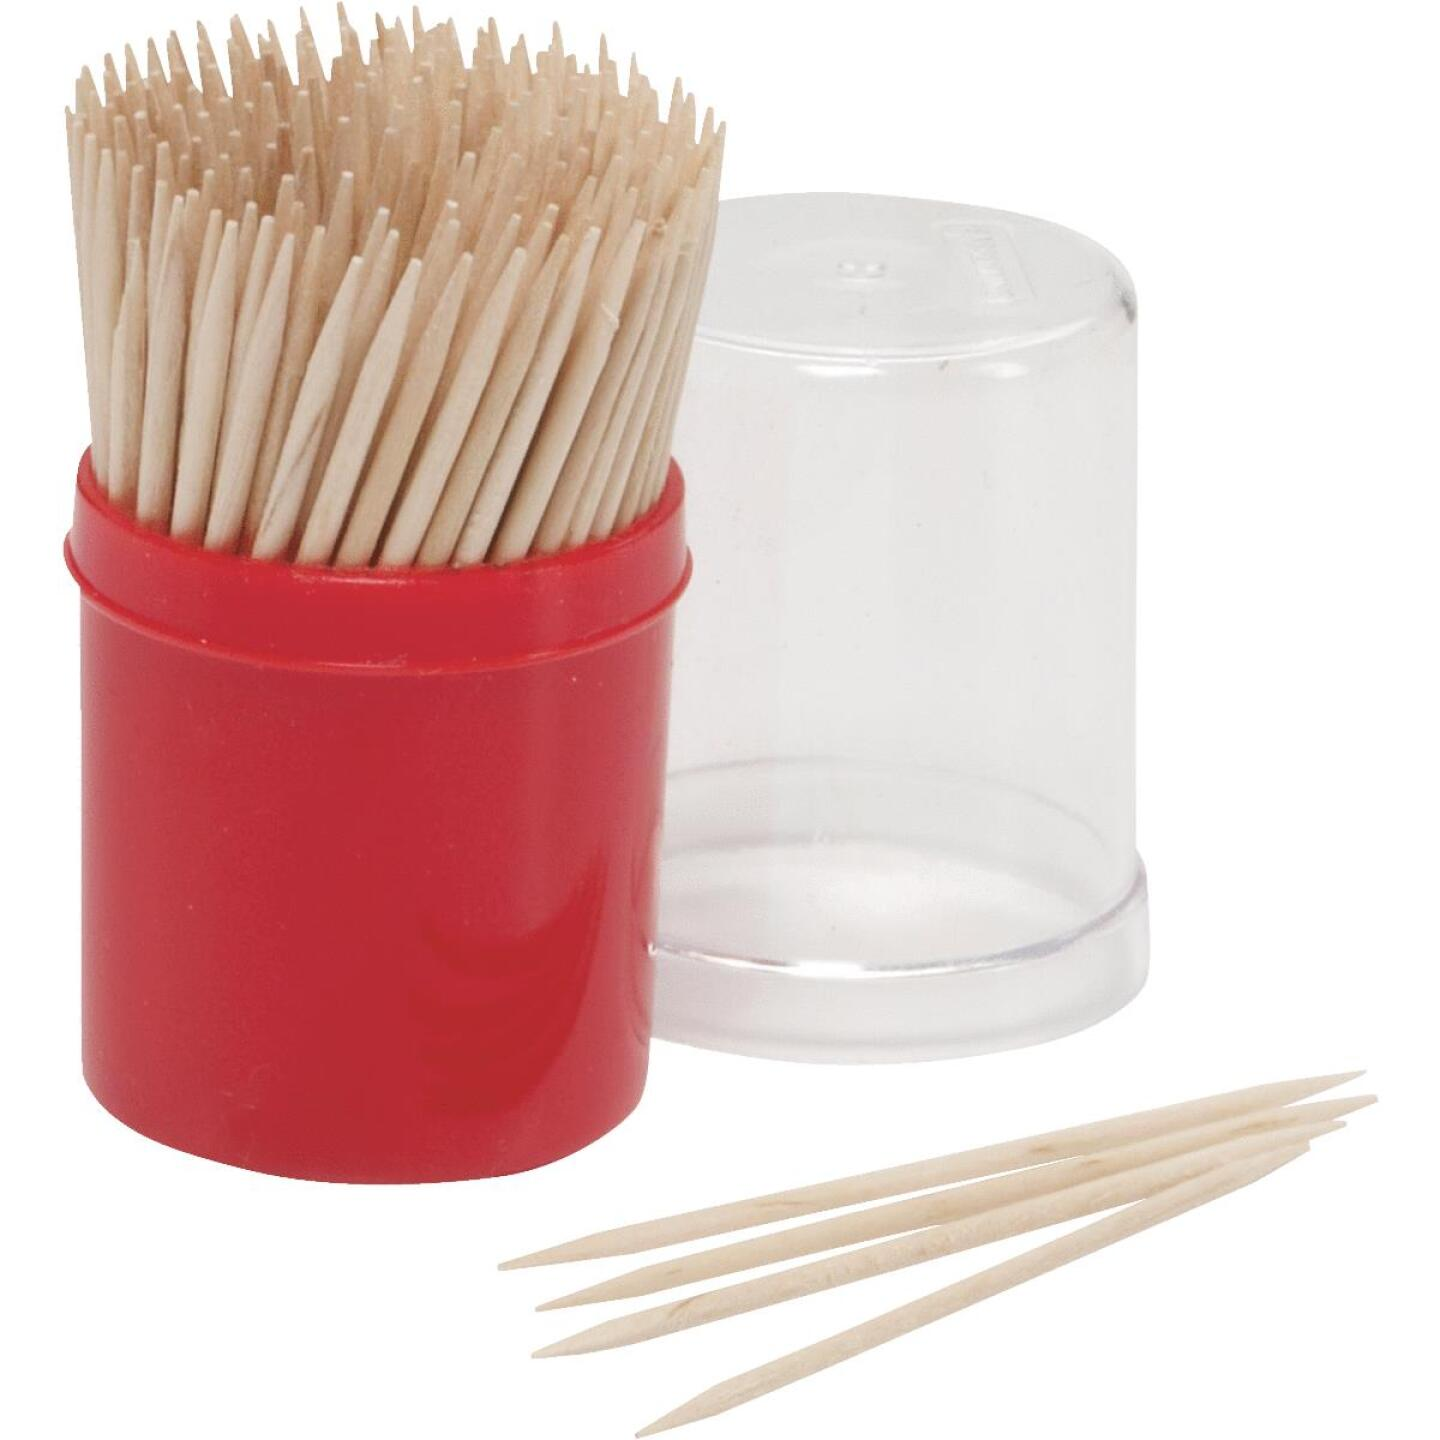 Farberware Toothpick Dispenser Image 1